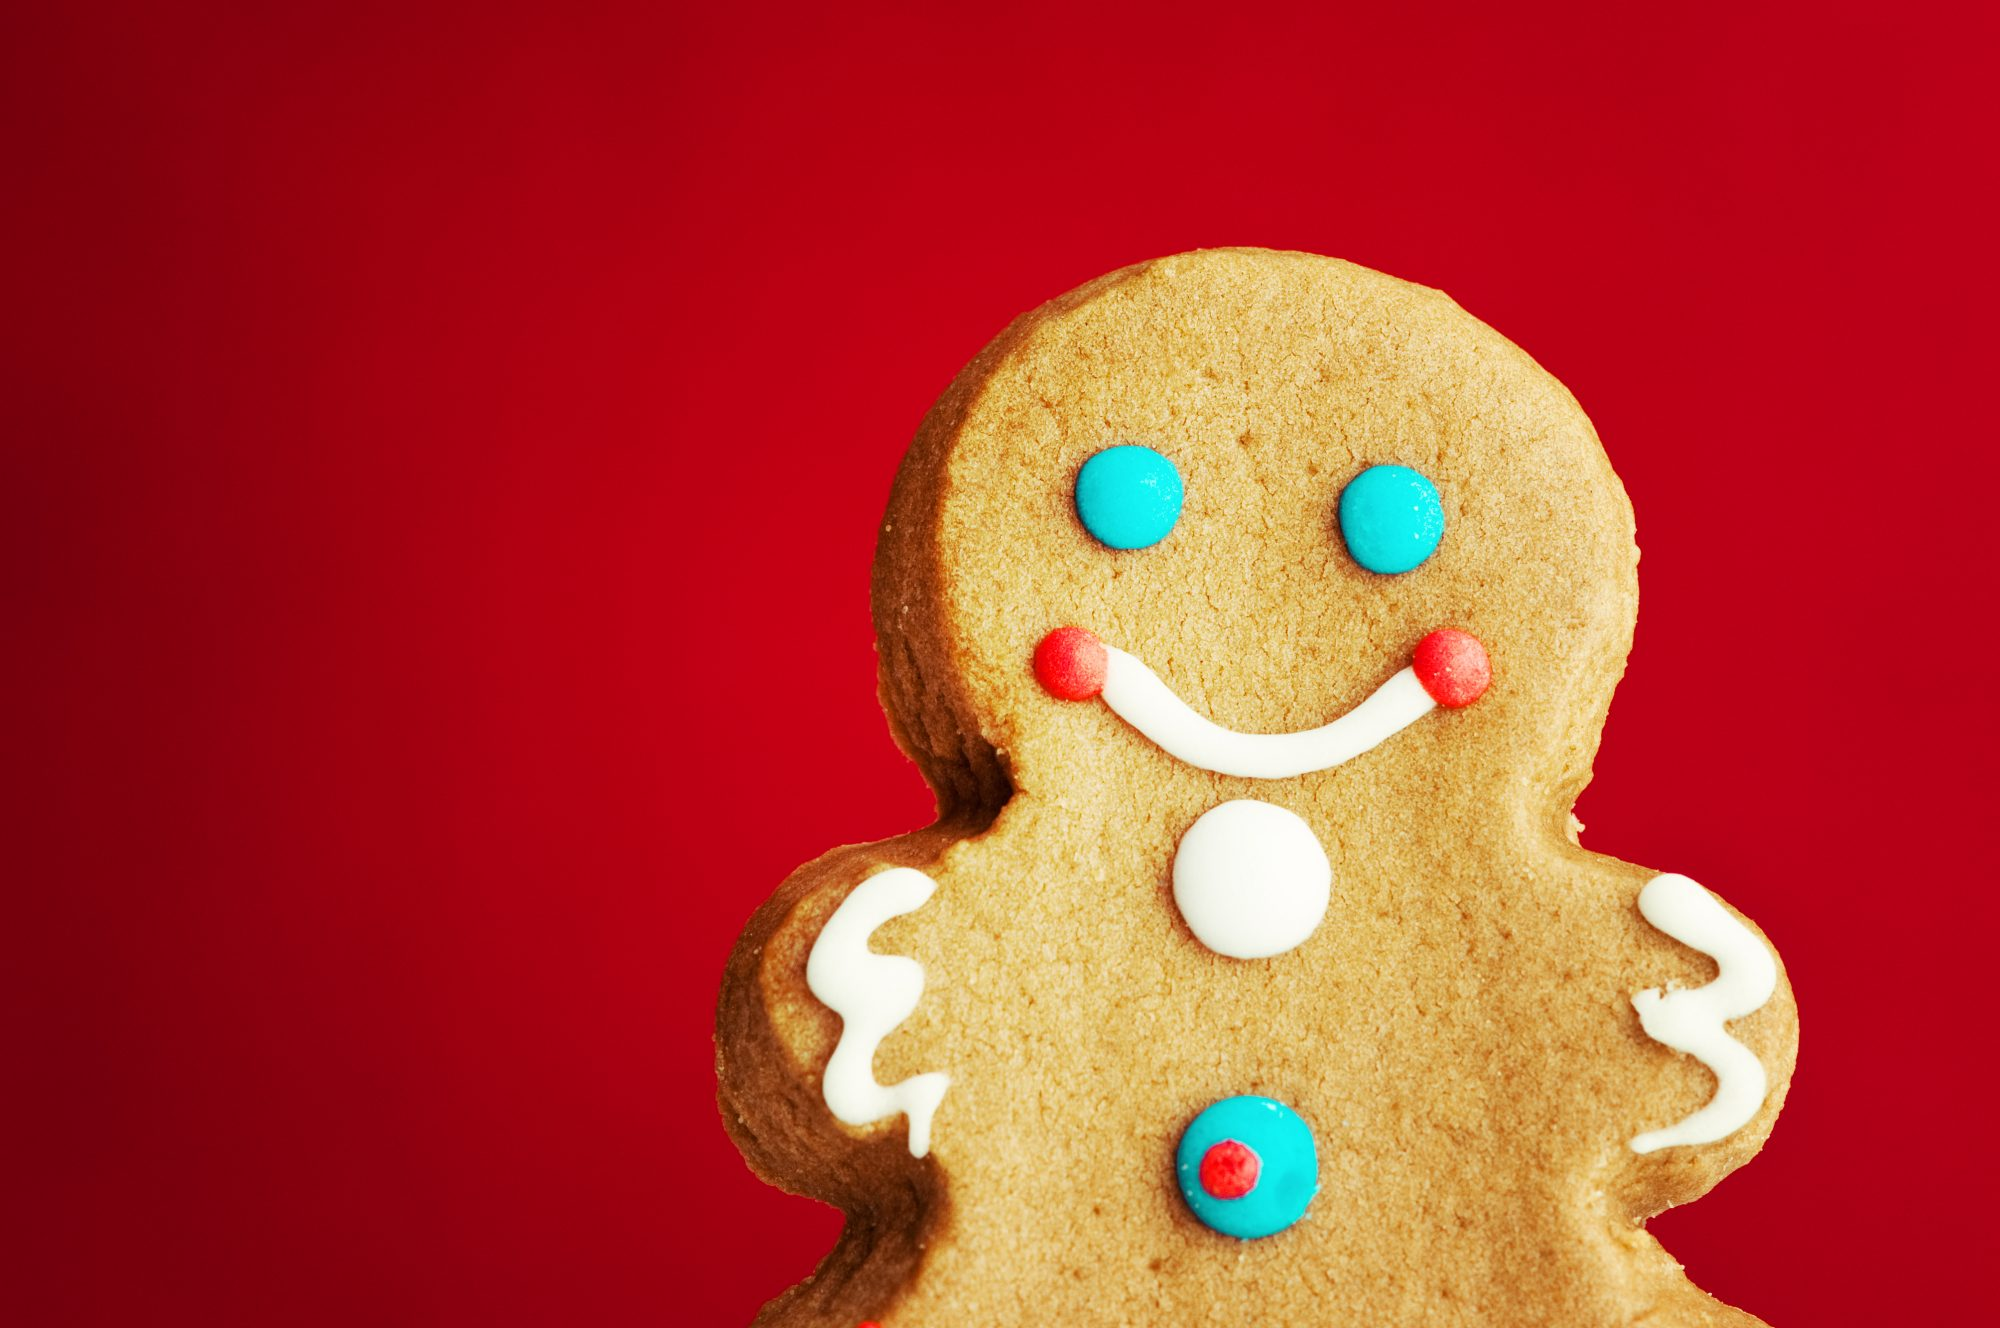 The Gingerbread Man Story: Here's the History Behind the Fairy Tale